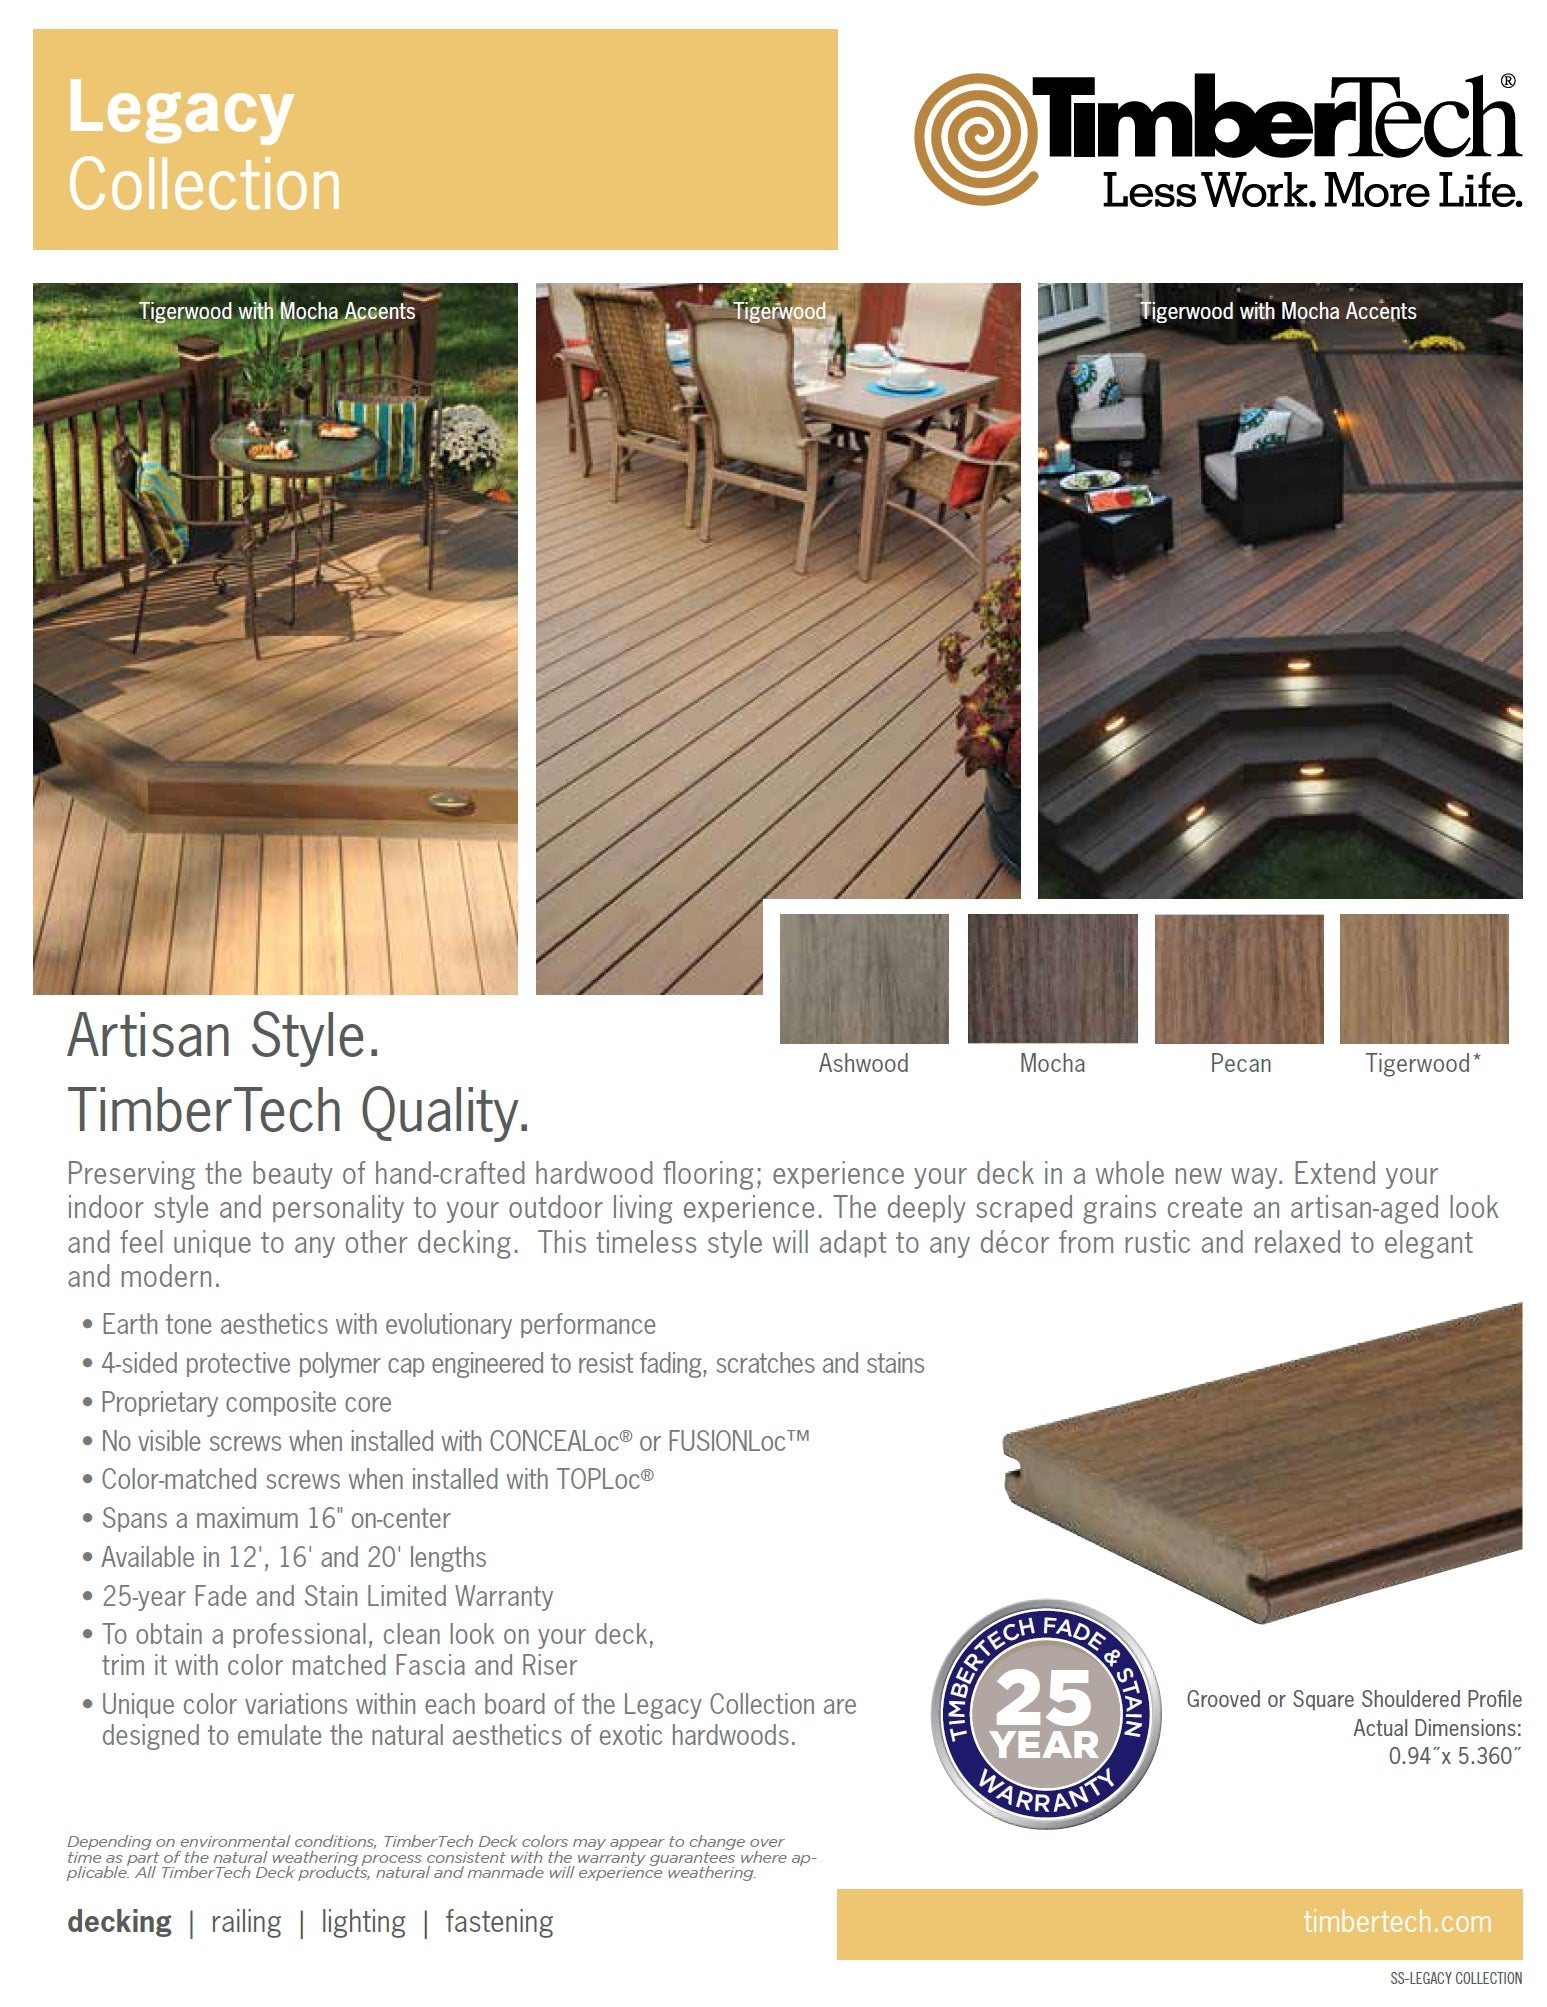 TimberTech Legacy Collection, Capped Composite Decking Like Legacy is the best wood-looking composite deck board